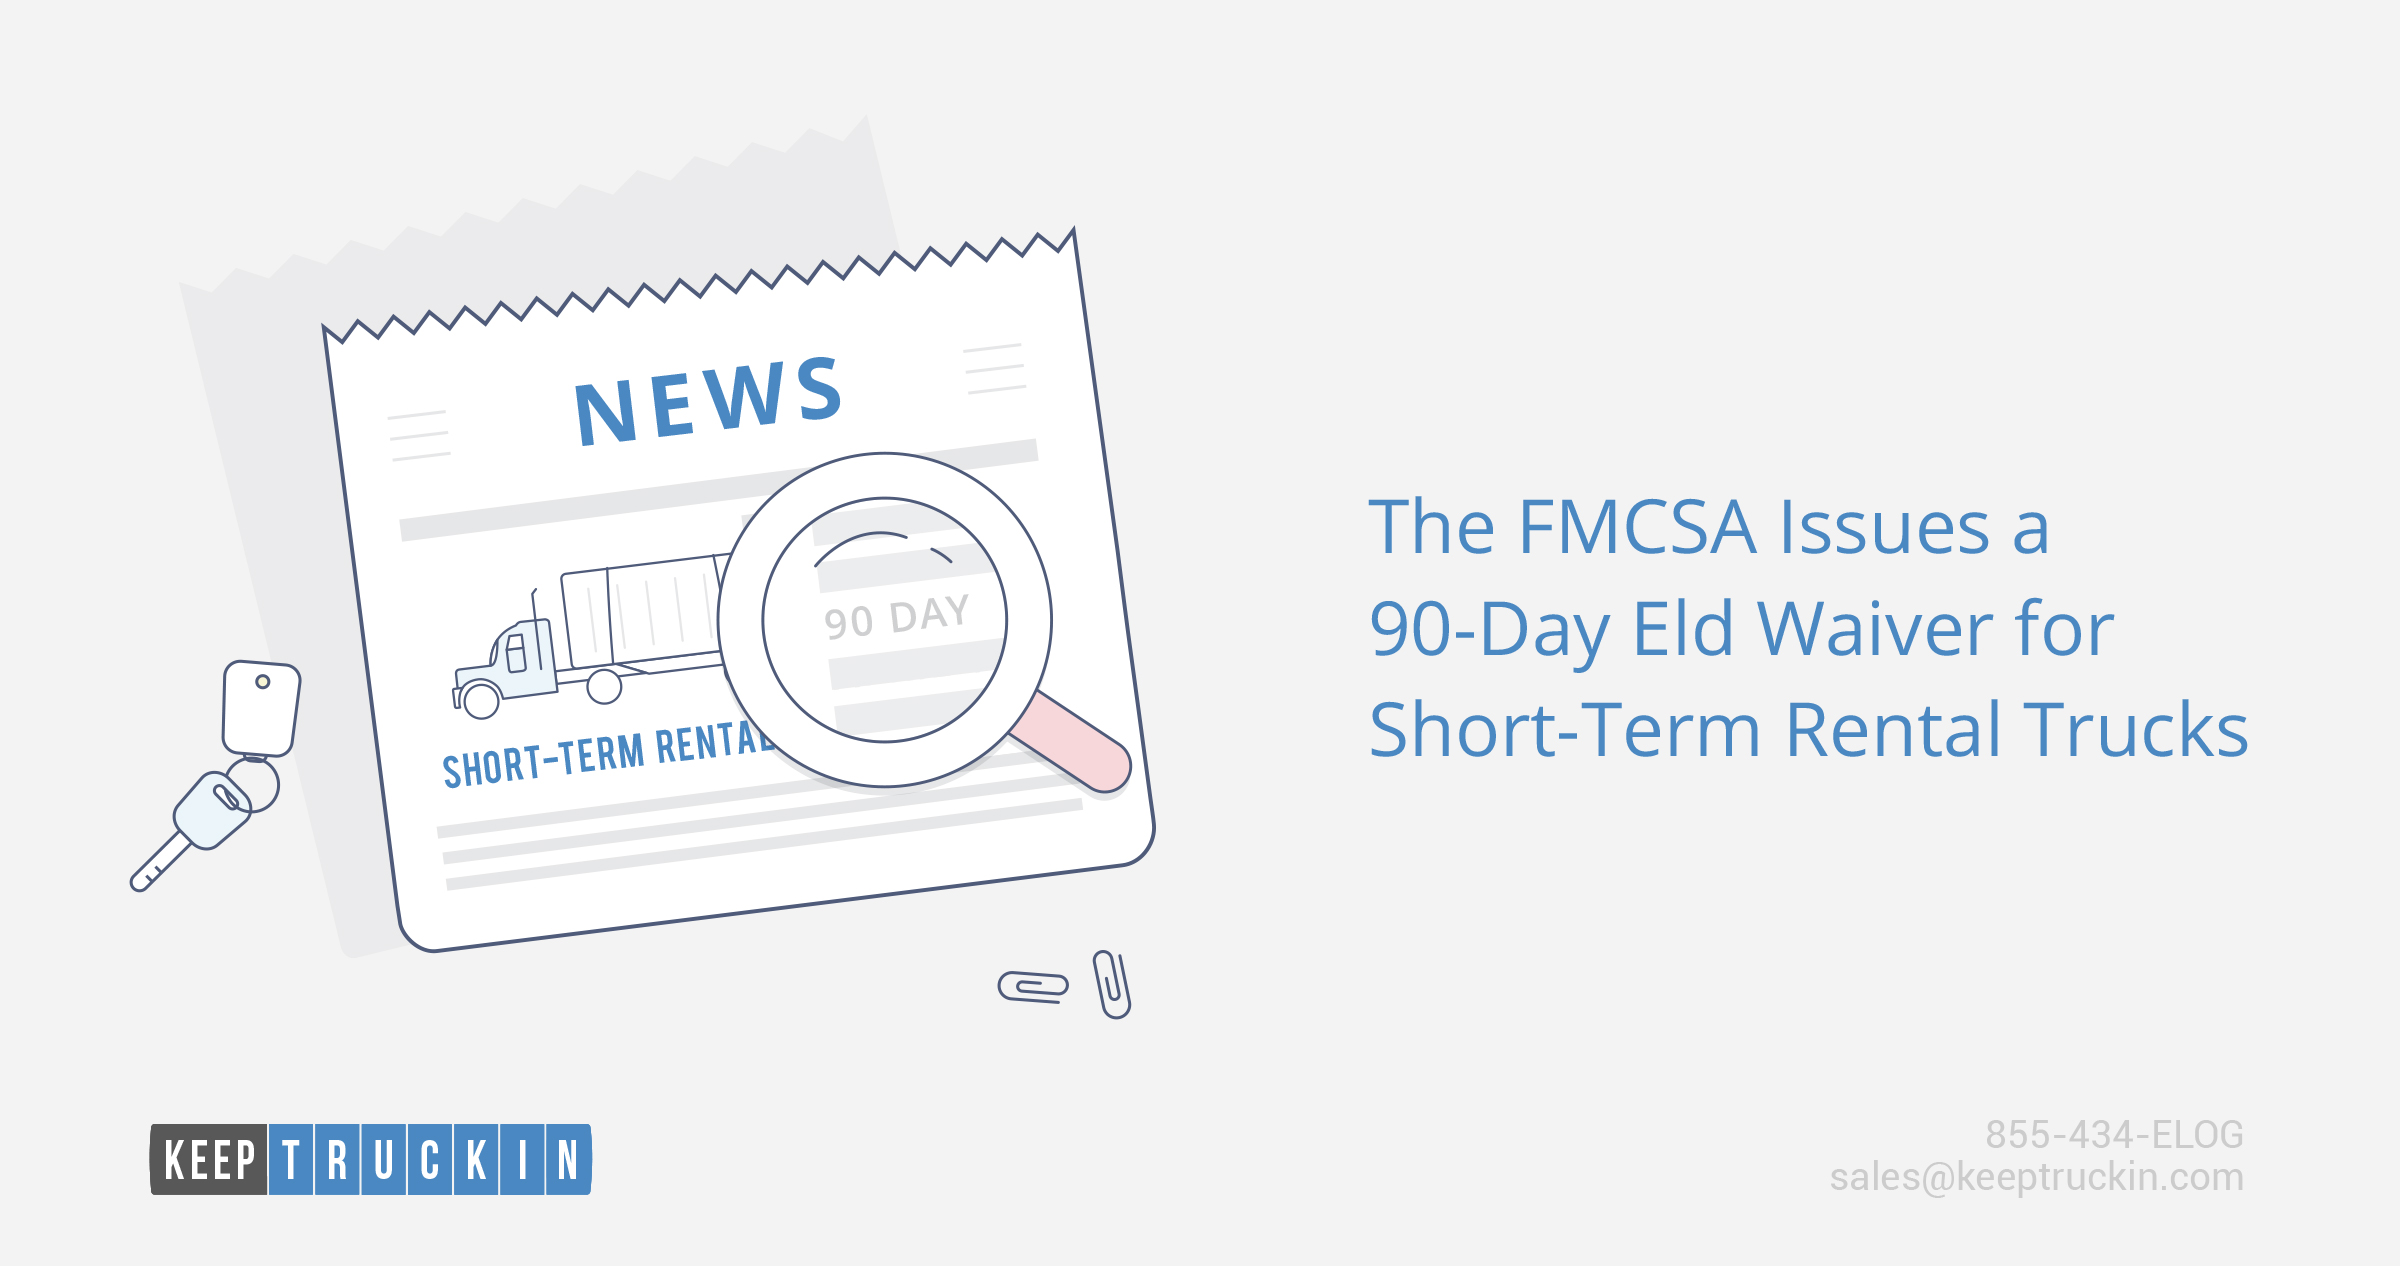 The FMCSA issues a 90-day ELD waiver for short-term rental trucks